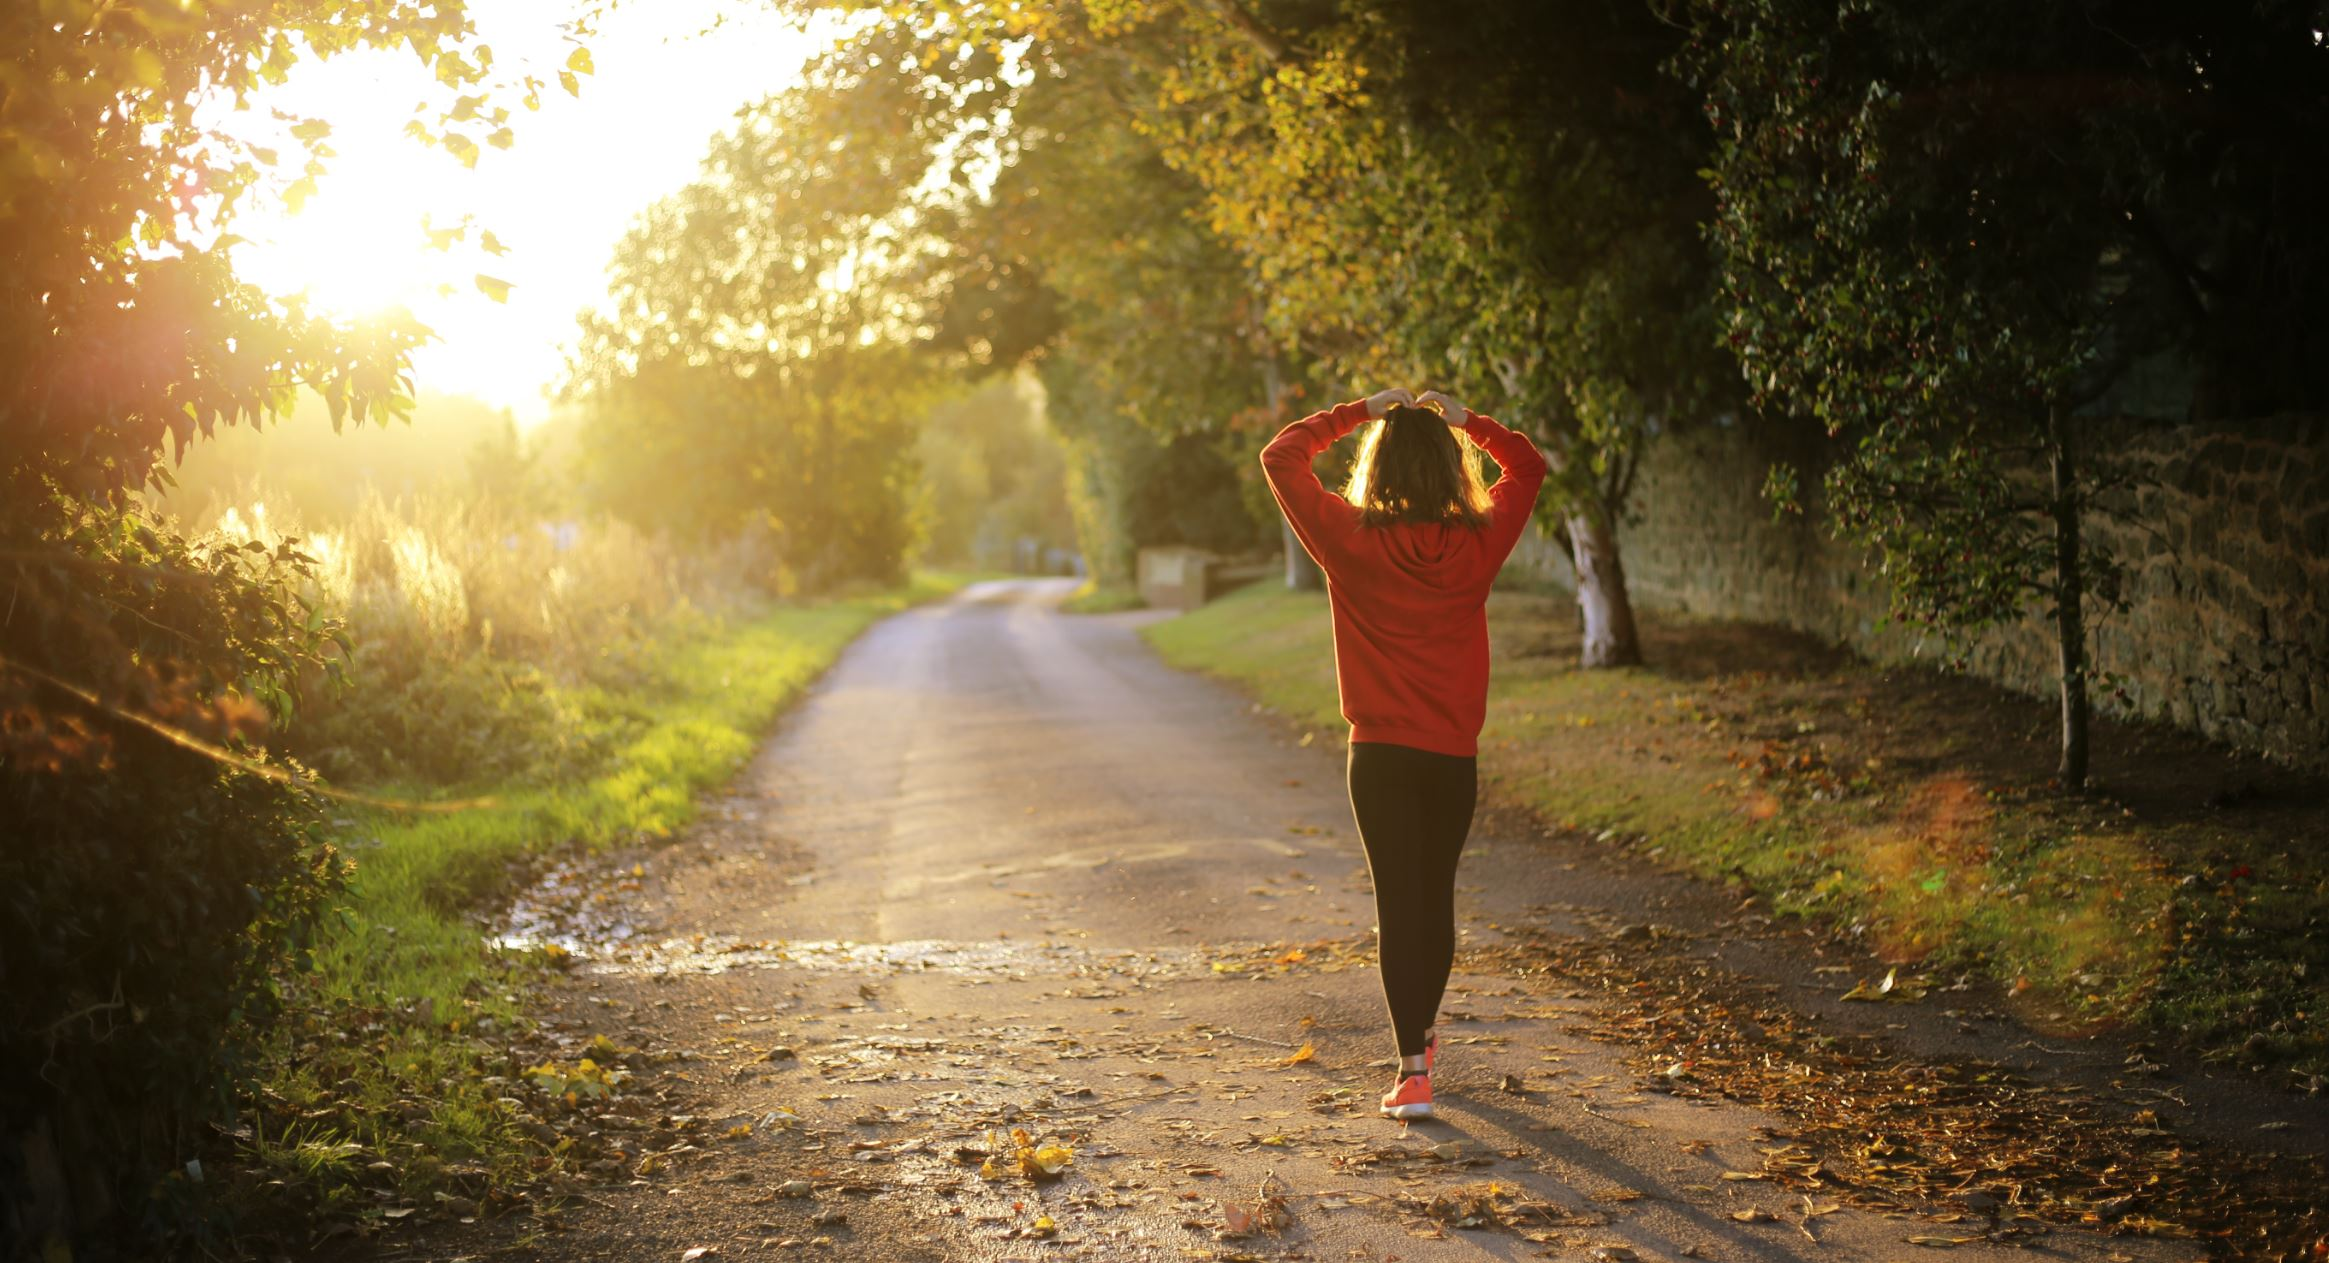 It's OK to feel out of breath when you start a new exercise program. Here's why it gets easier with time - Image Credit:  Emma Simpson via Unsplash